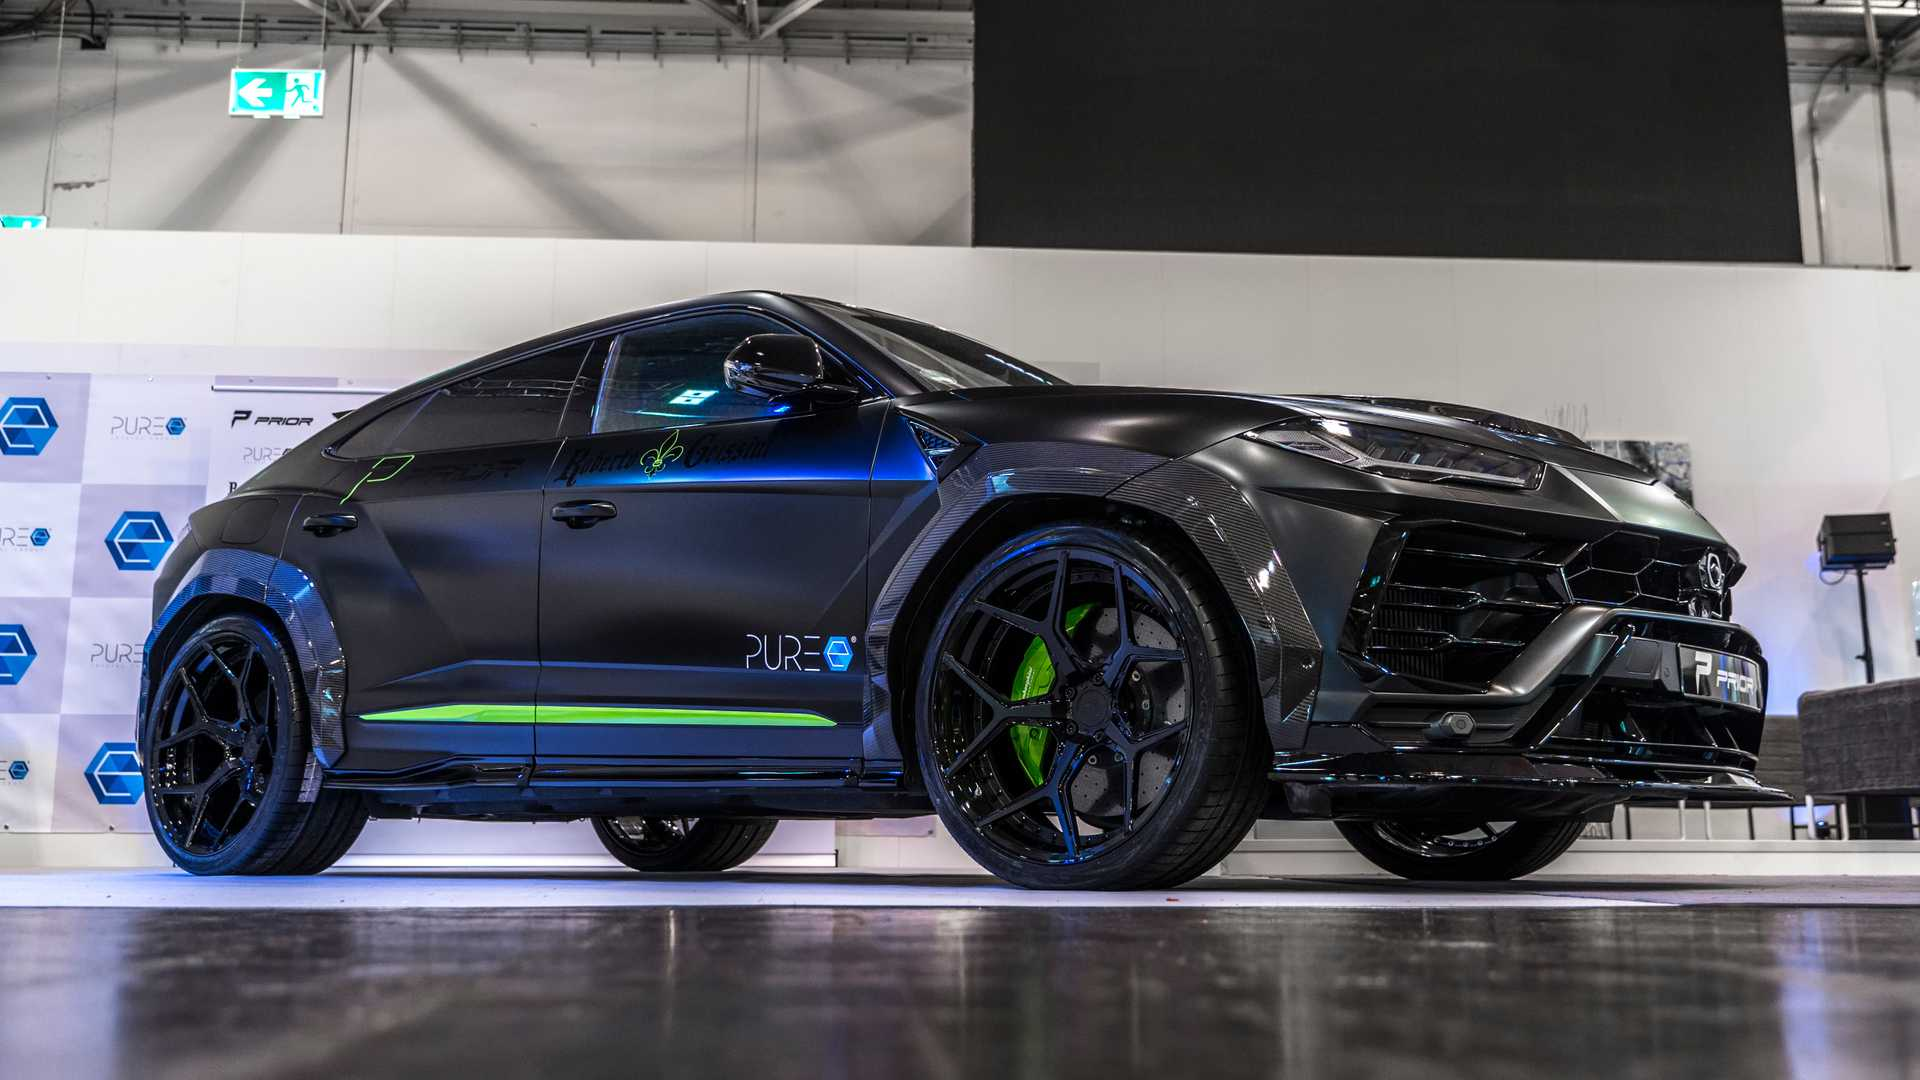 The latest aerodynamic kit Prior Design made for the Lamborghini Urus could be described as polarizing at best with its grotesque fender flares, a huge diffuser, and a bulging hood – but the client likes it, which is what really matters.